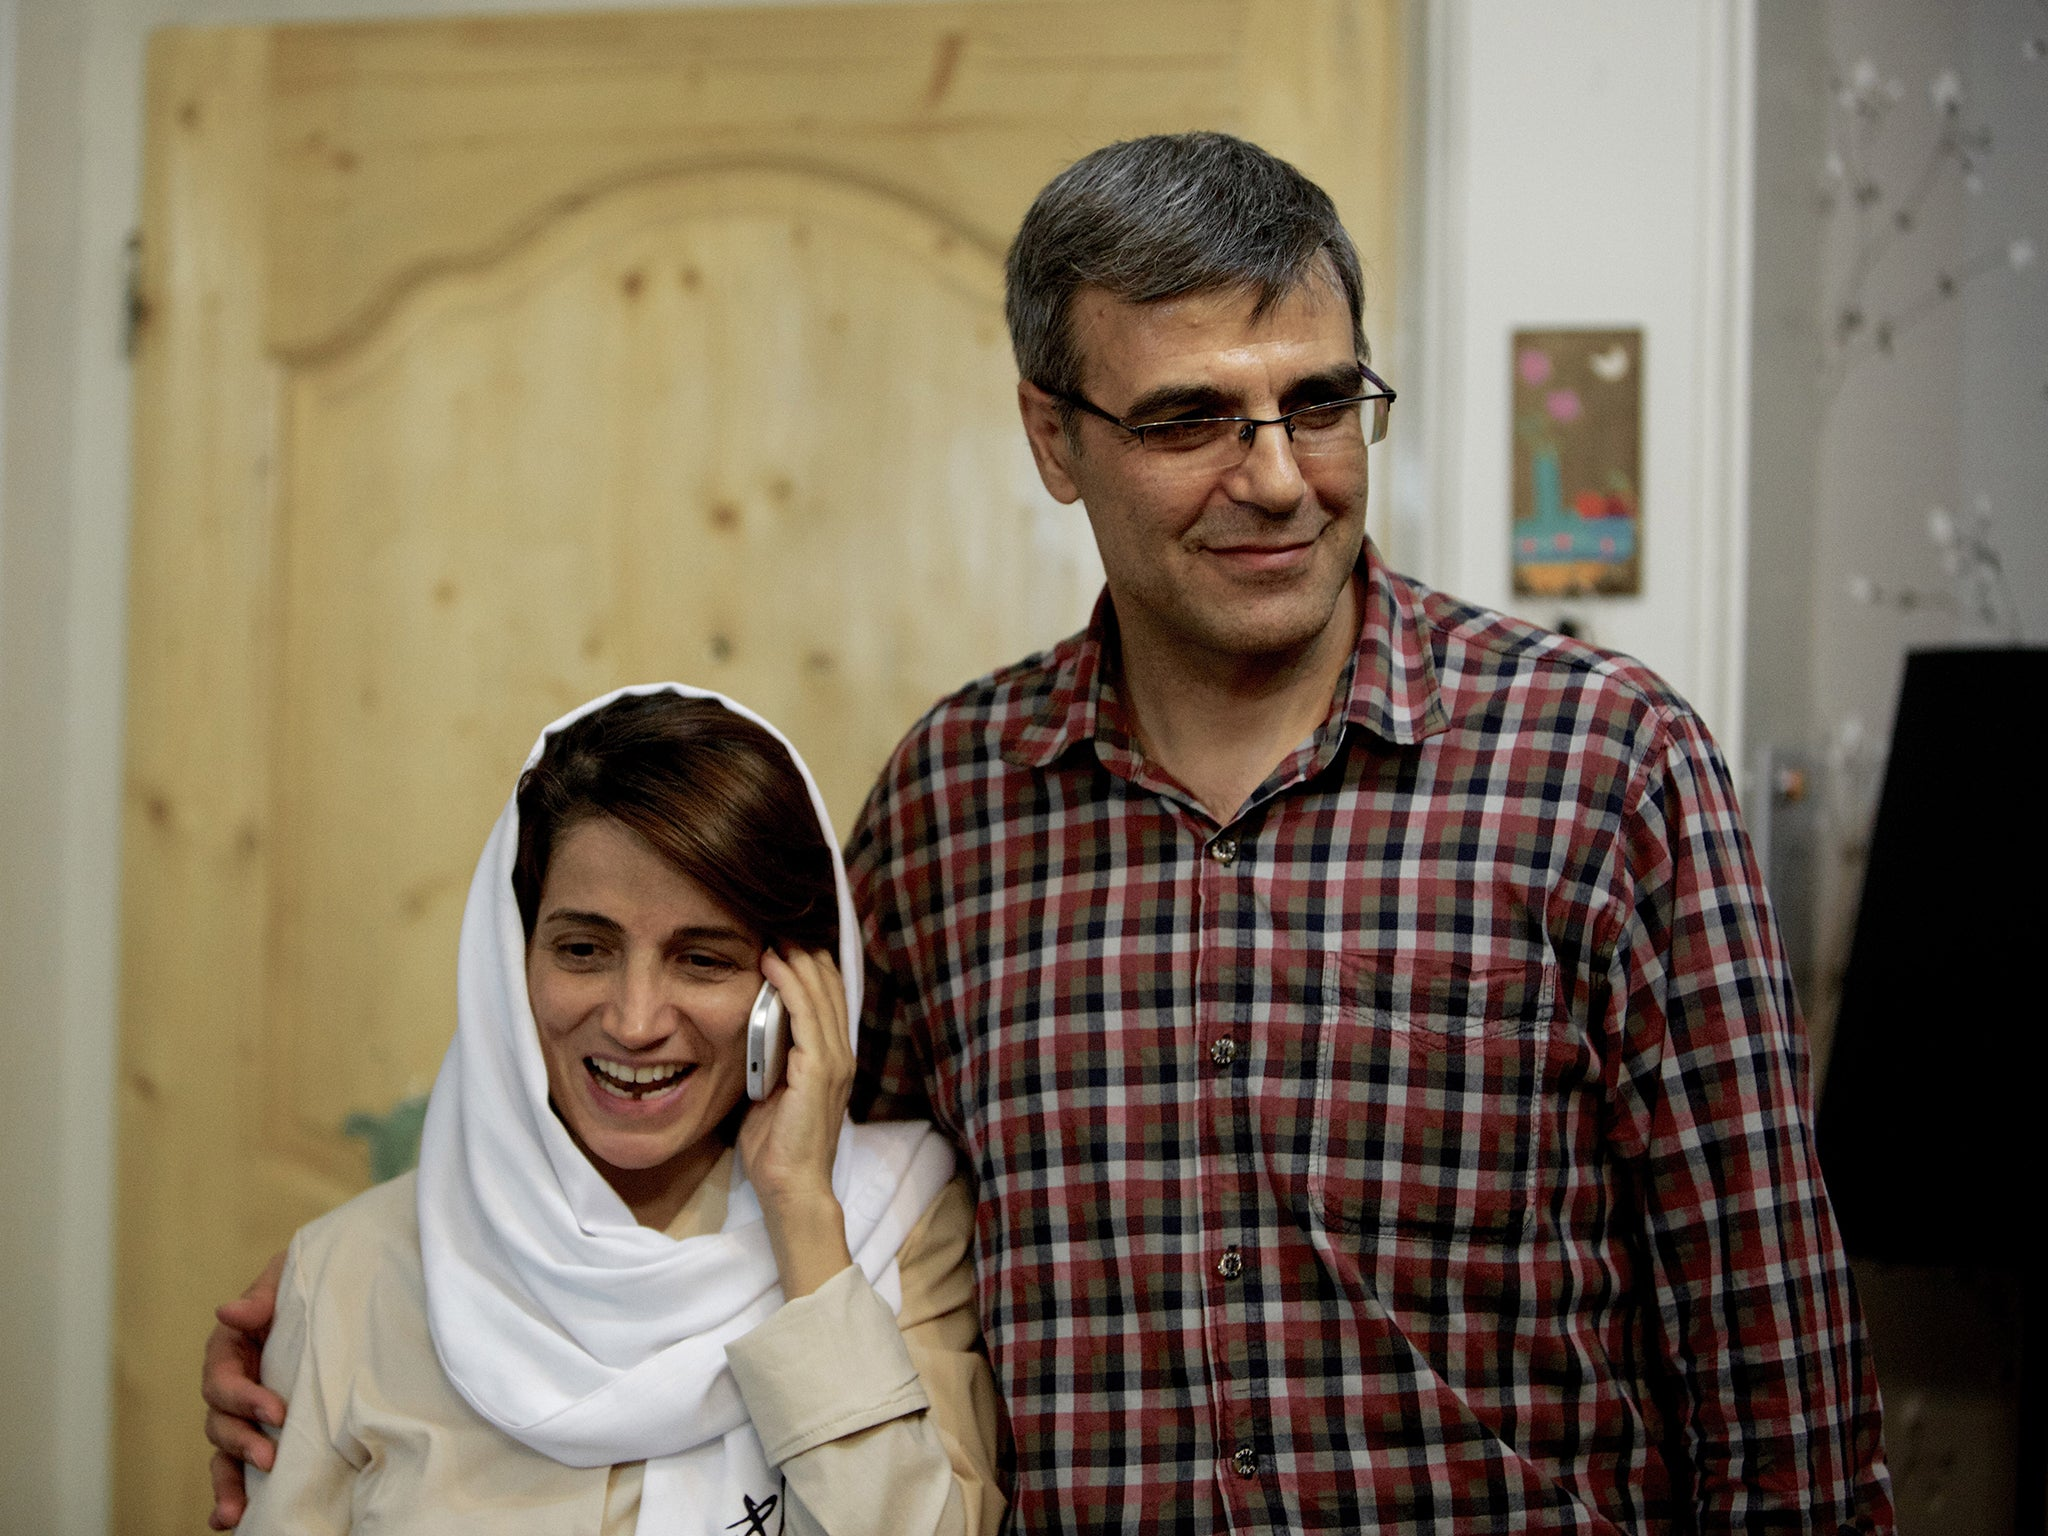 Fresh surge in arrests of human rights activists in Iran, say advocates